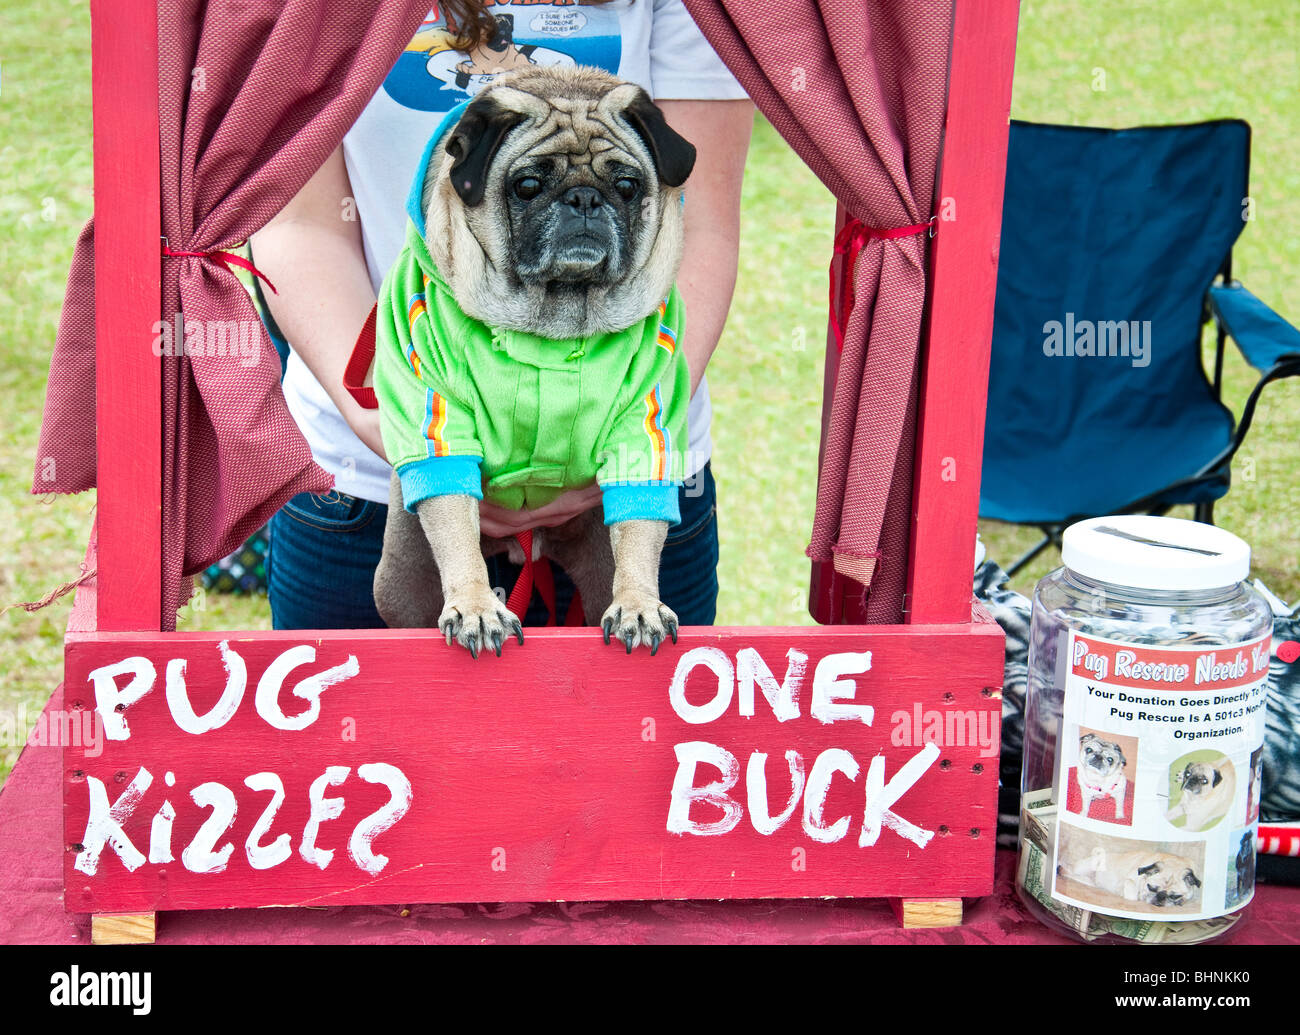 Dougie the Pug sells kisses at a booth at the 2010 Lakewood Ranch Pug Parade, to raise money for Pug Rescue. - Stock Image